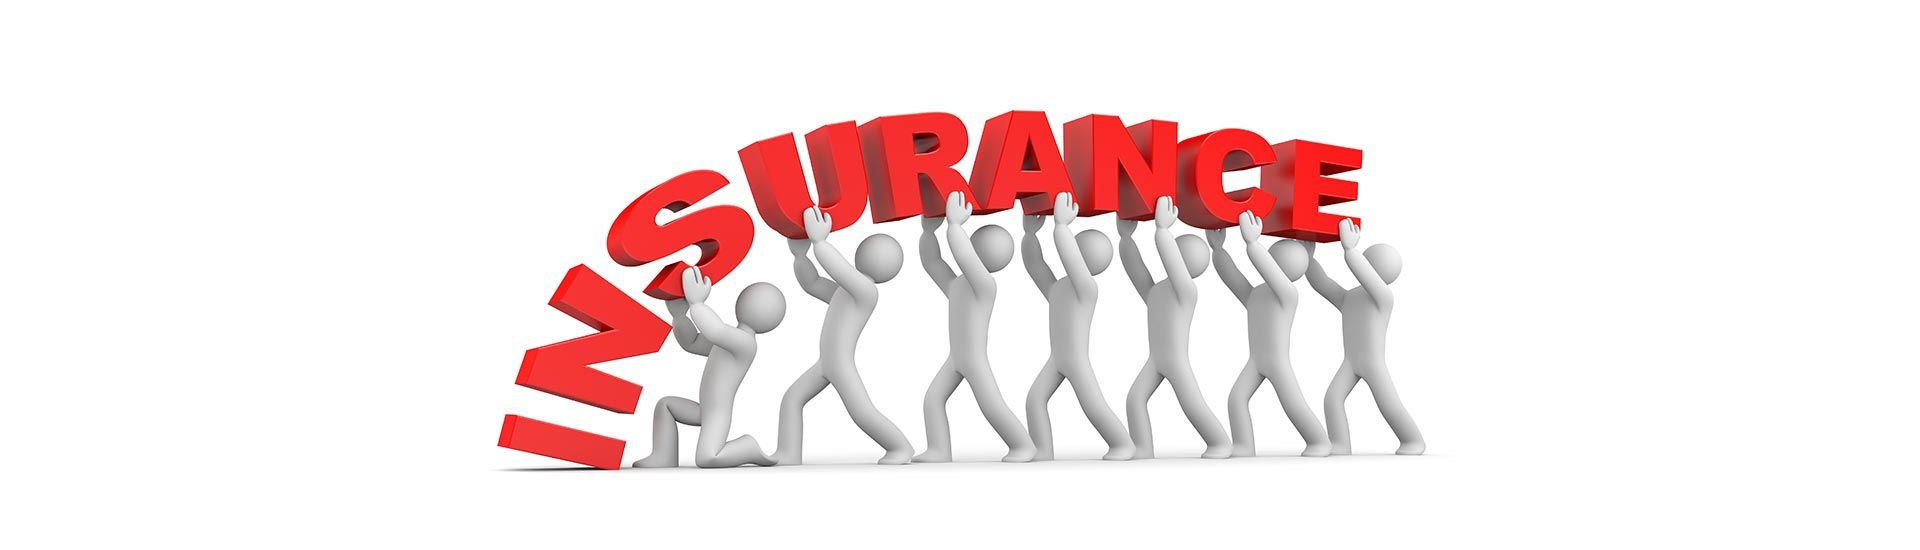 Anyone On The Look Out For An Insurance Agency Or Who Cannot